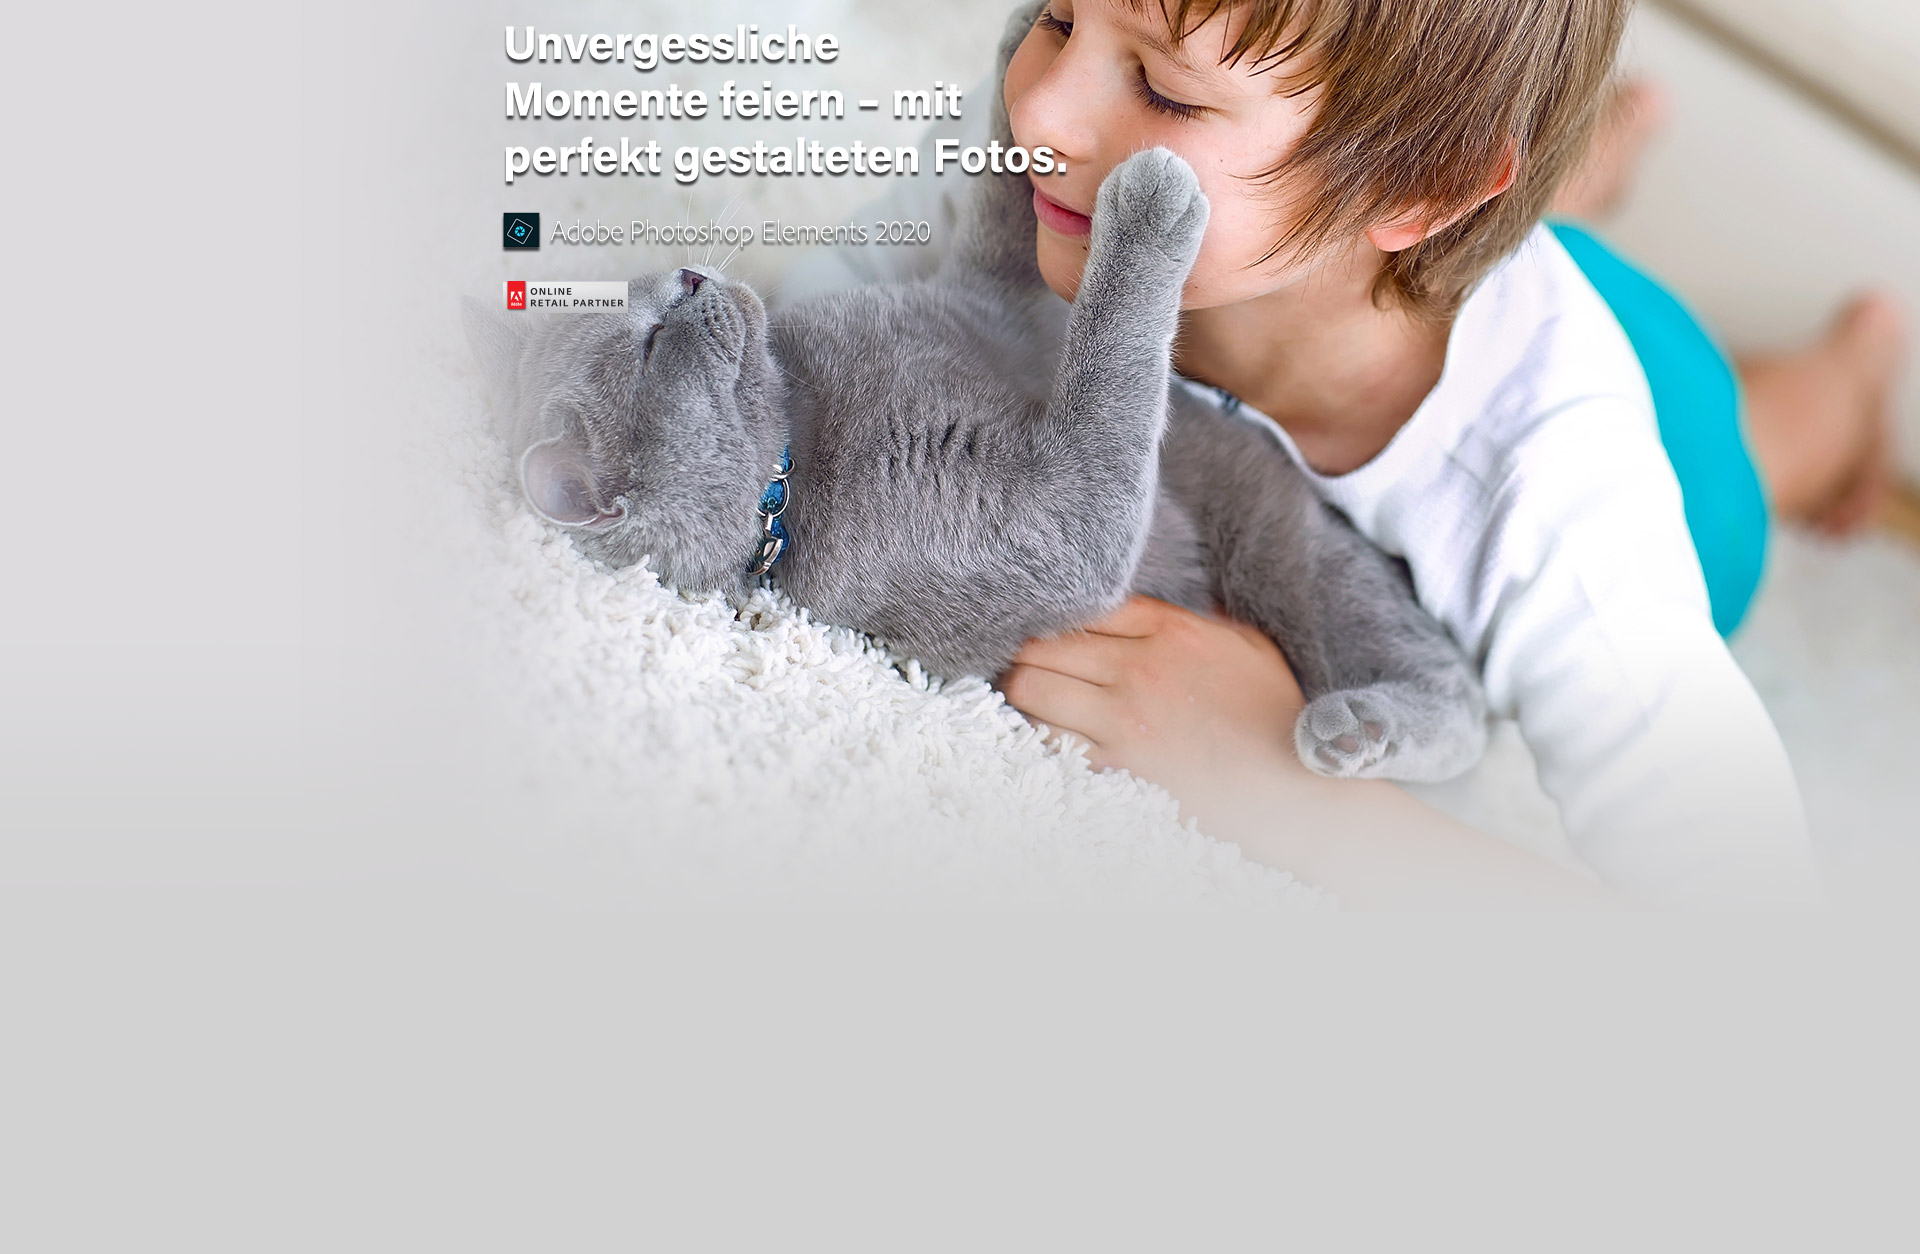 Adobe Photoshop Elements 2020 (Windows)